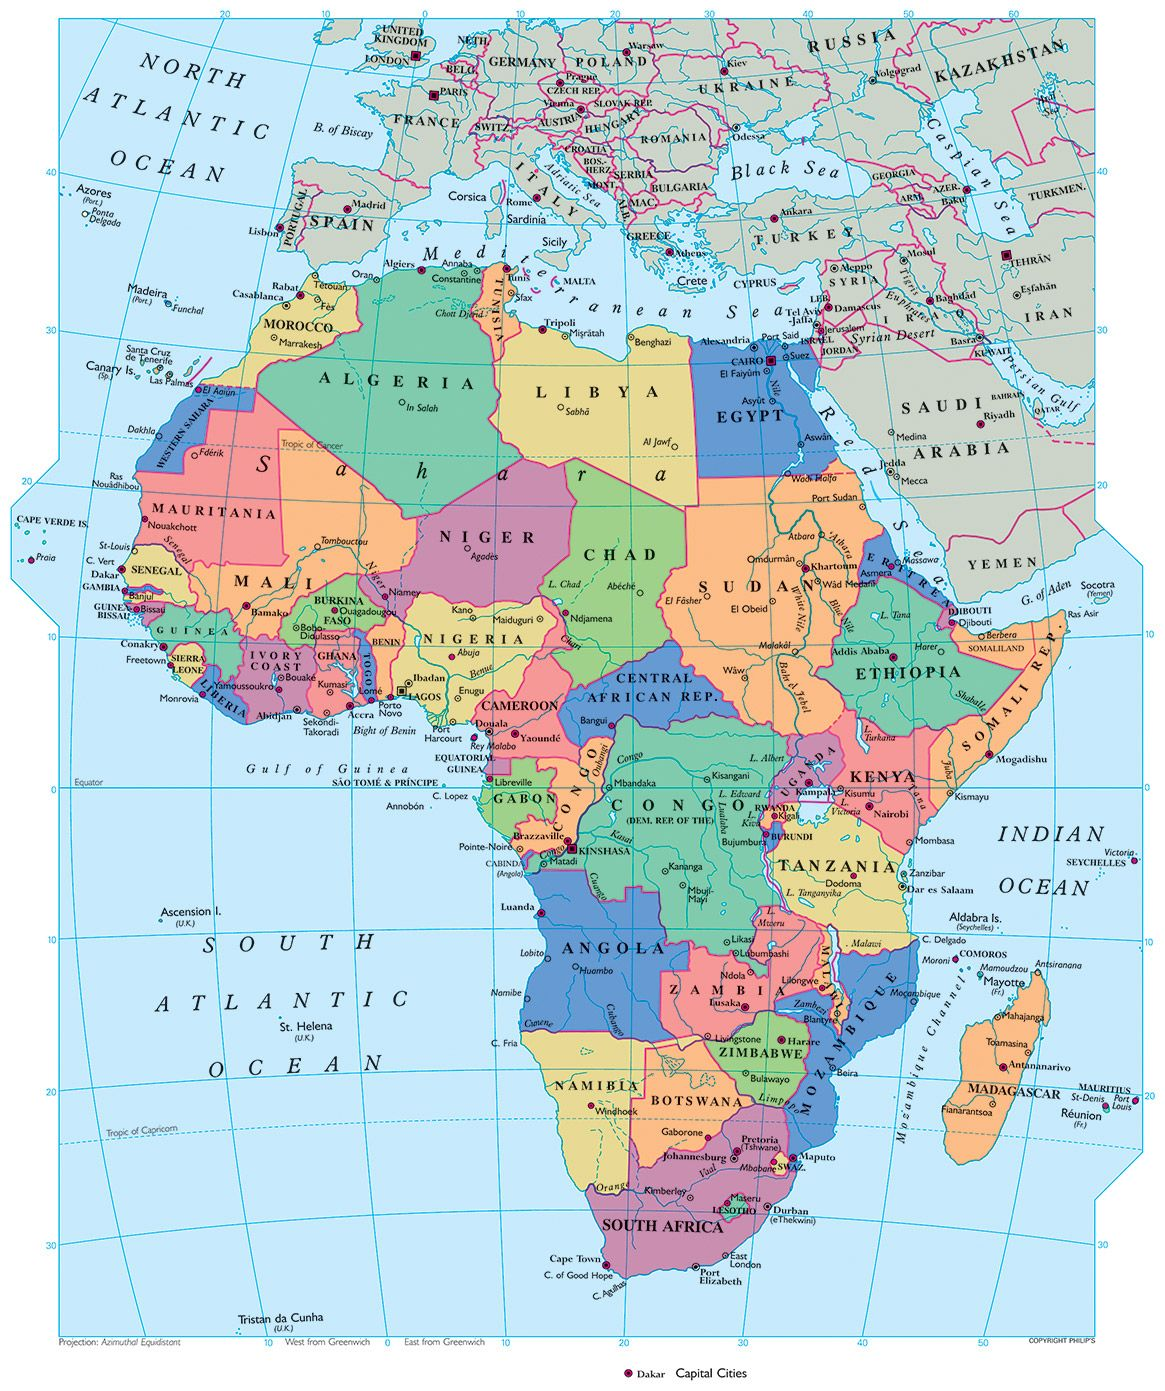 africa map showing equator